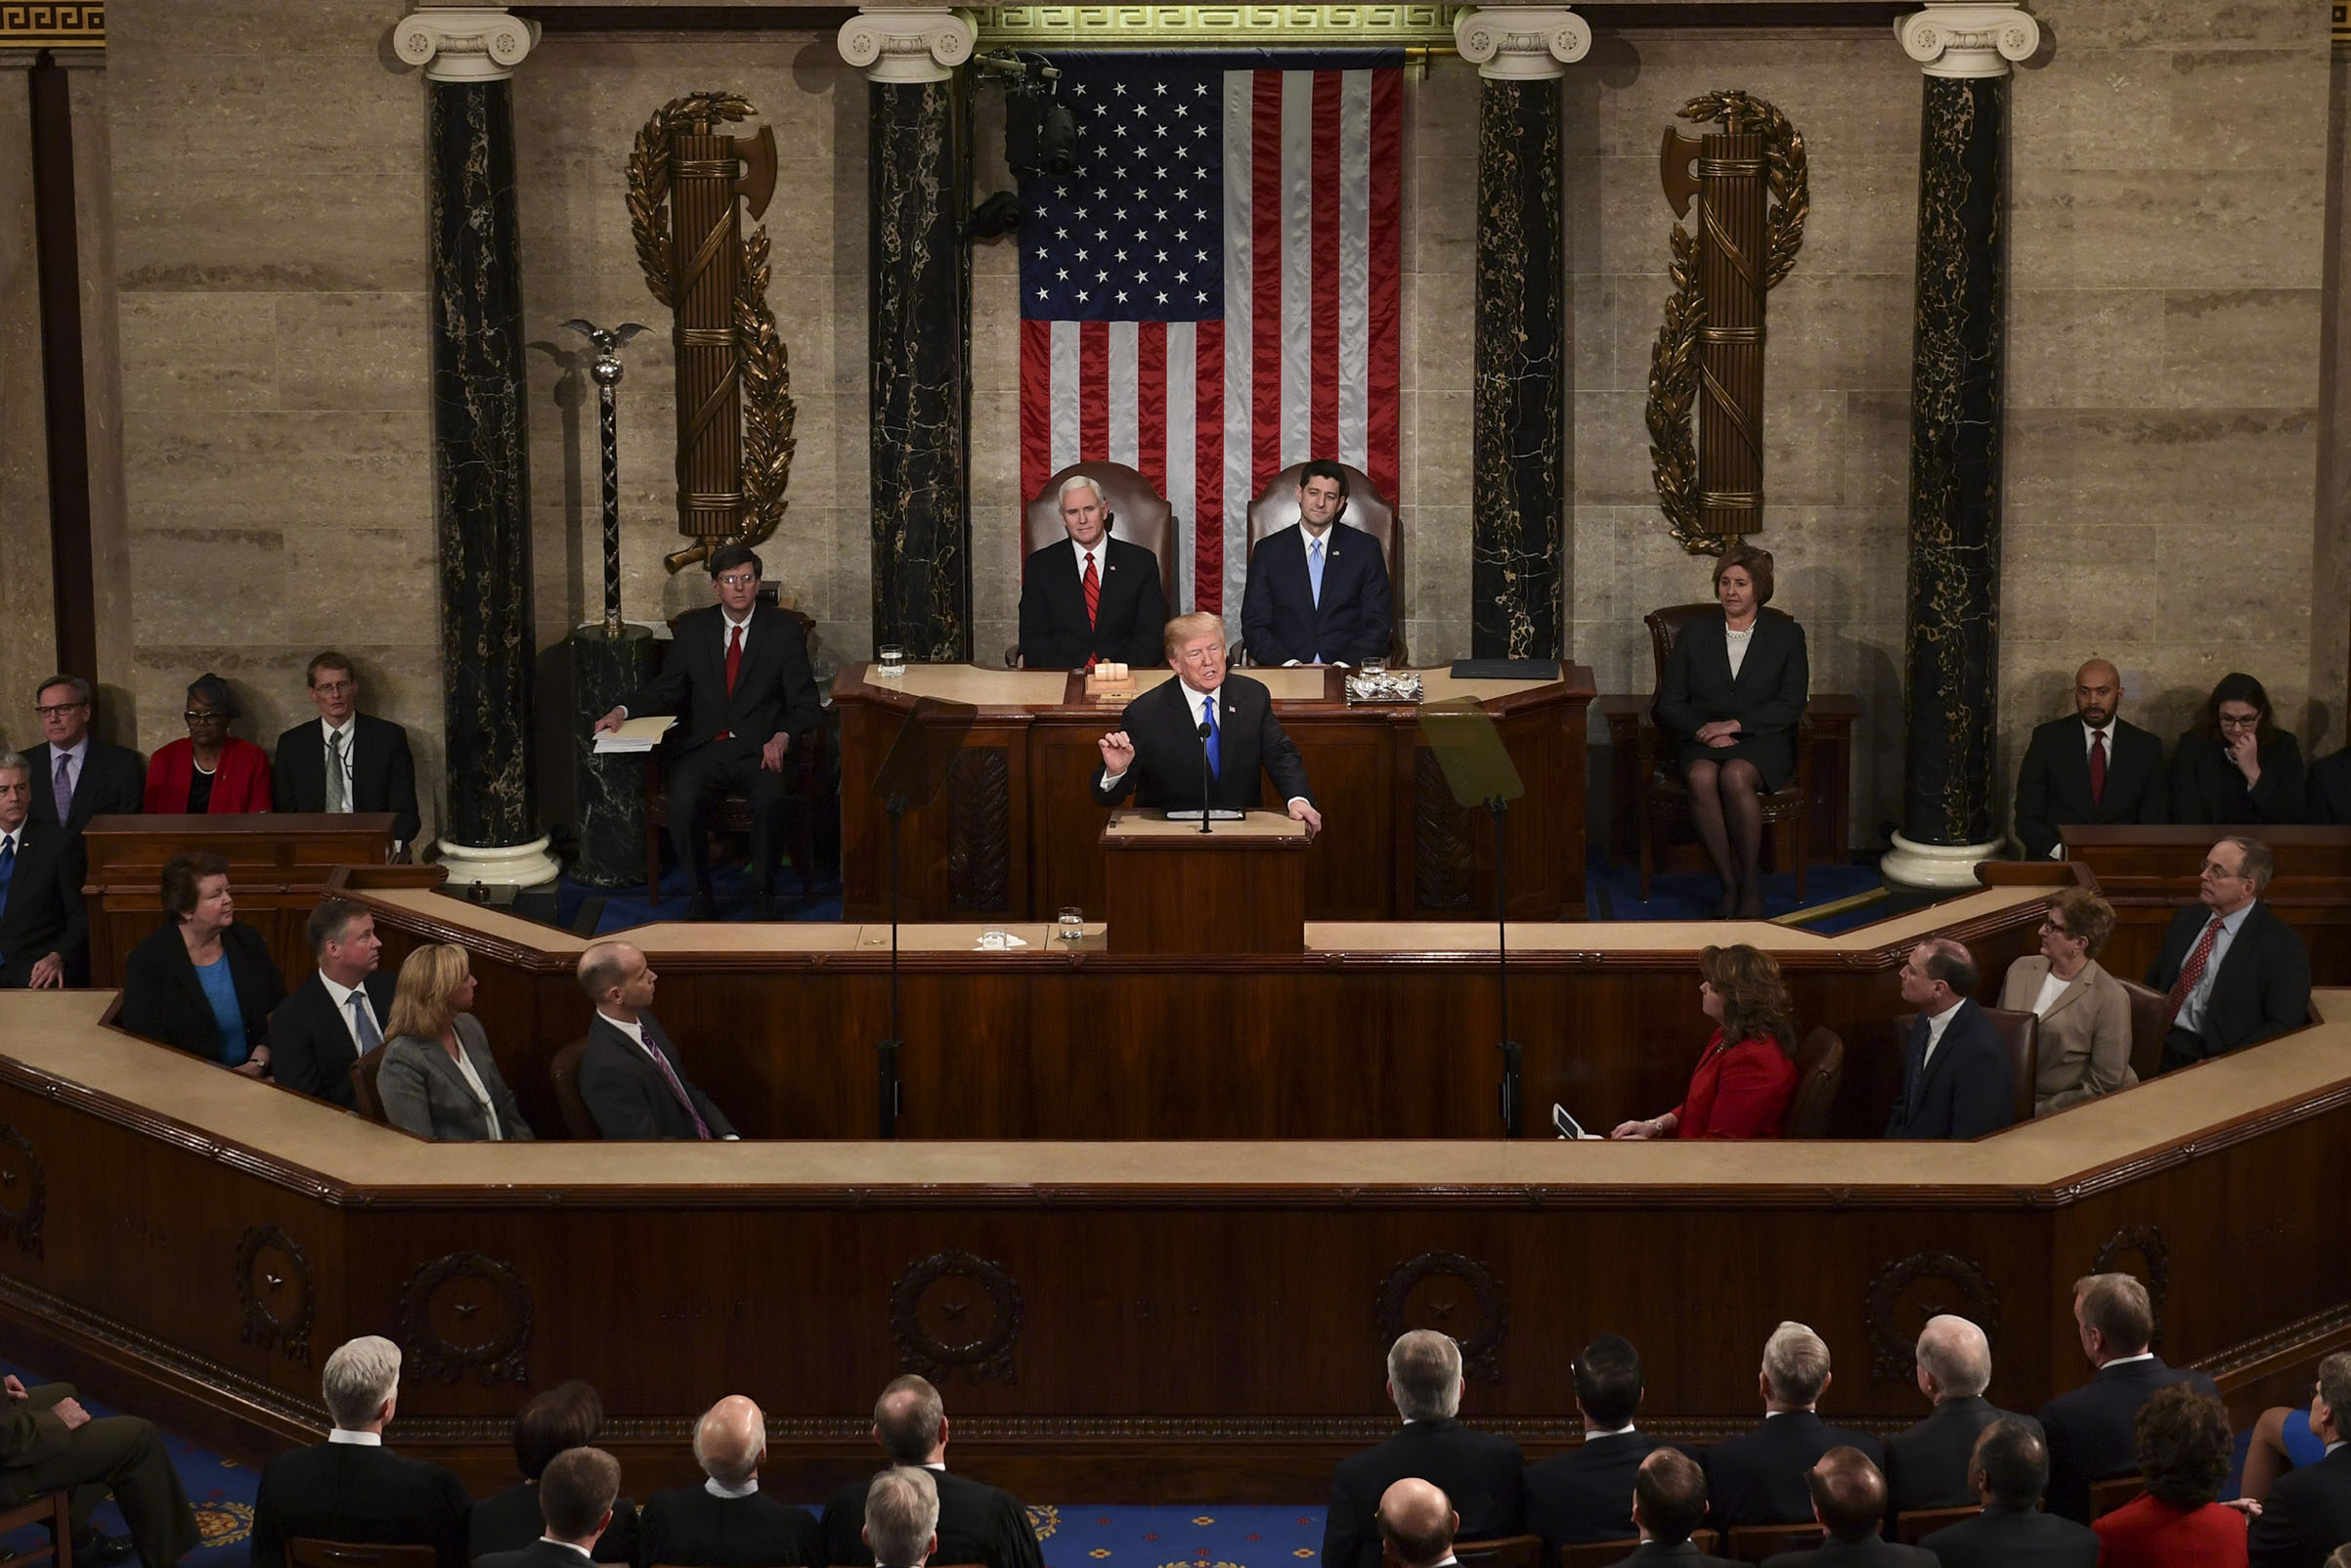 President Donald Trump delivers his State of the Union address to a joint session of Congress on Capitol Hill in Washington, on Jan. 30, 2018.